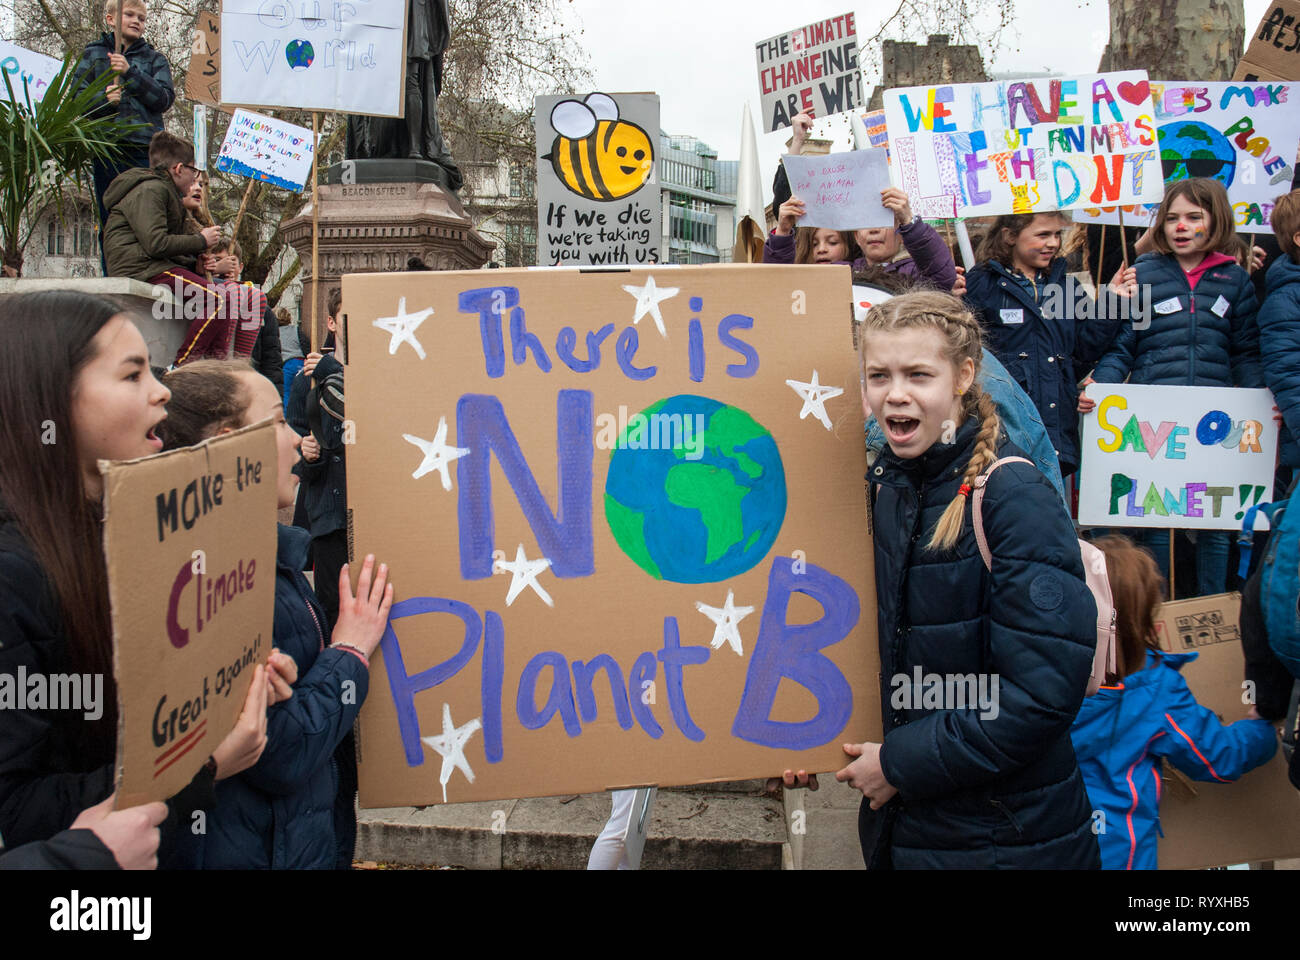 London, UK. 15th March, 2019. School students campaigning against climate change protest outside Parliament. Credit: Maggie sully/Alamy Live News. School children on strike, part of the 'FridaysforFuture' protest against climate change gather outside Parliament, London. Girls shouting slogans about planet justice and global warming carrying a colourful placard 'There is no planet B' with others posters in the background including one with a yellow stripey bee 'If we die we are taking you with us' and 'Save the planet'. - Stock Image